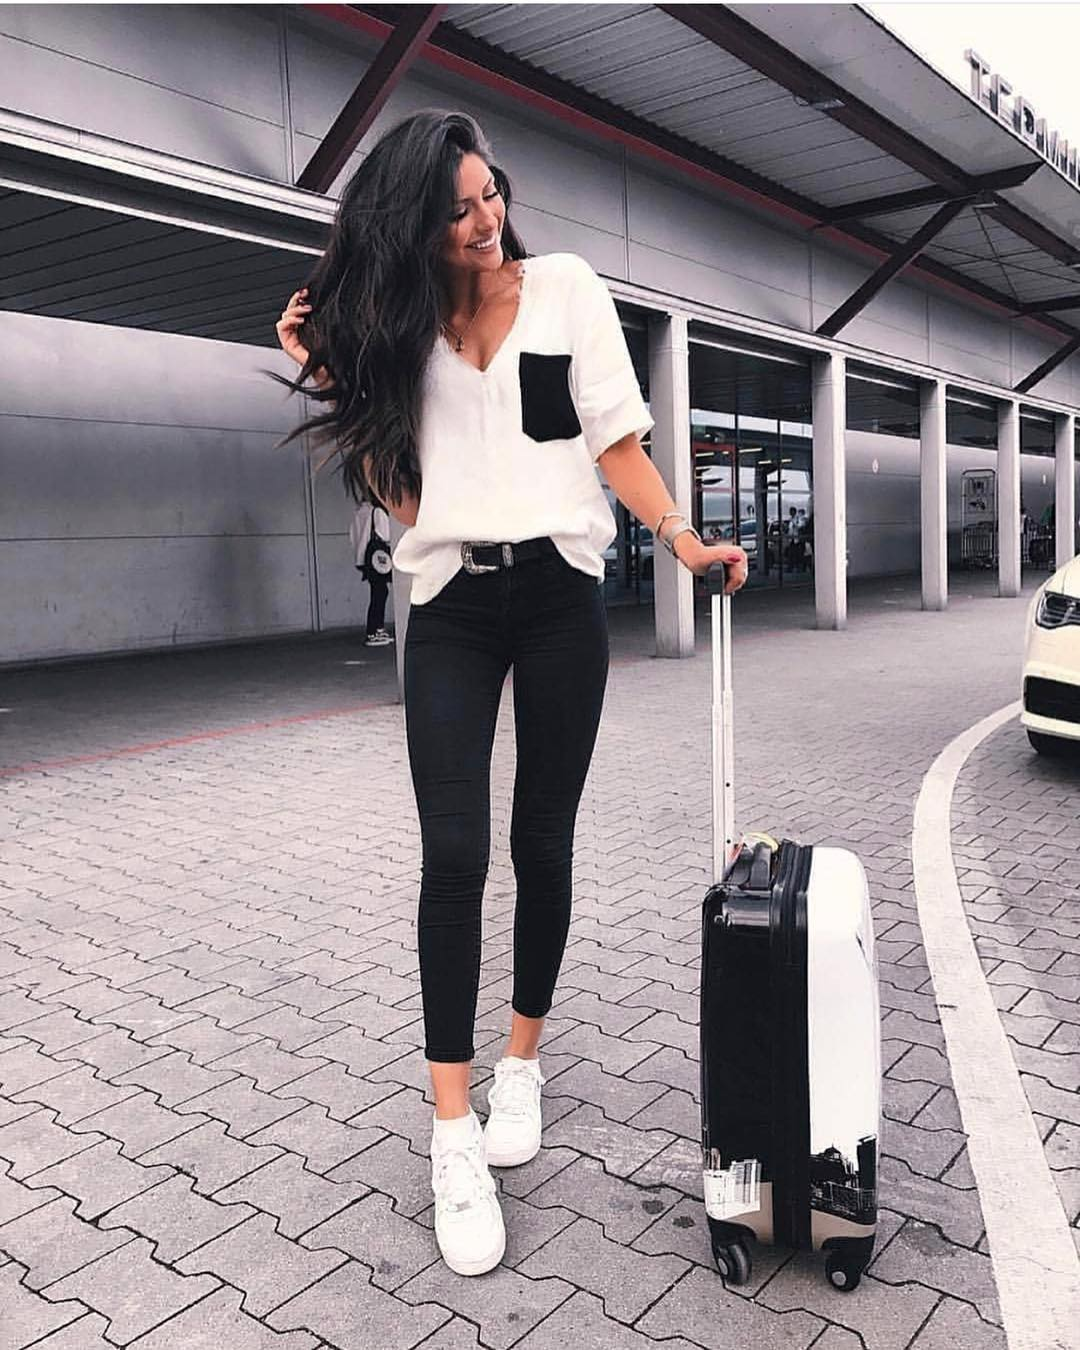 Black White OOTD For Airport 2020